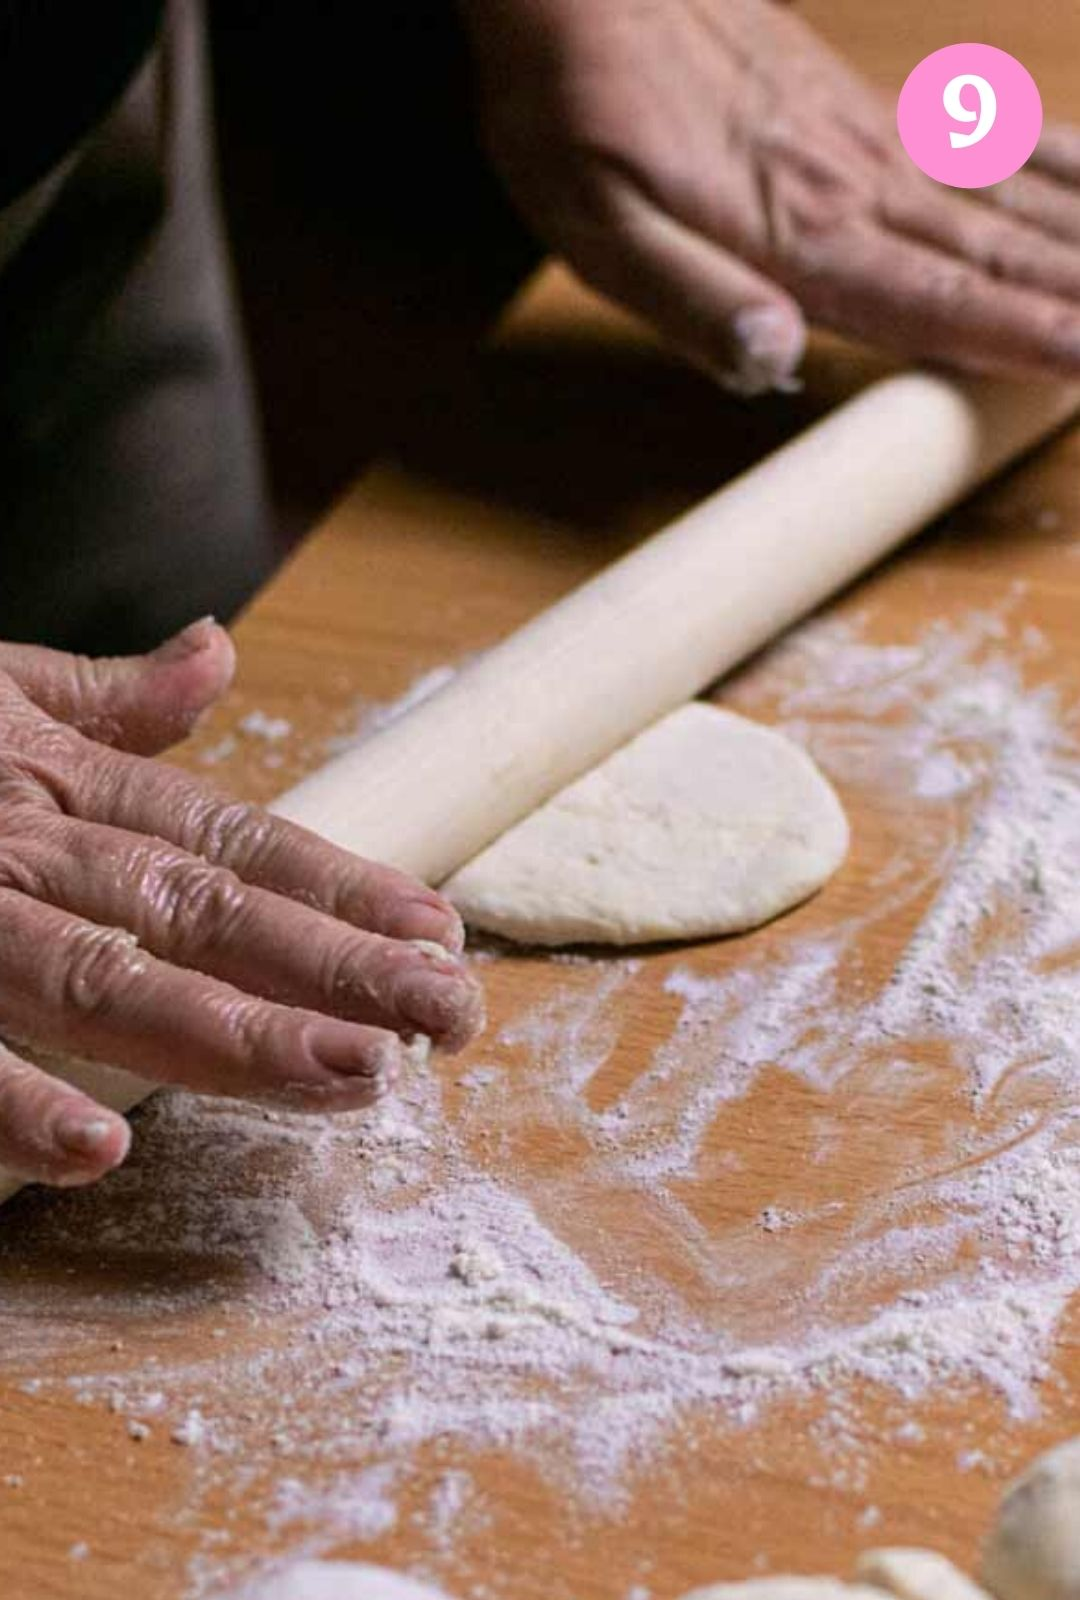 Rolling out dough into a flat round disc